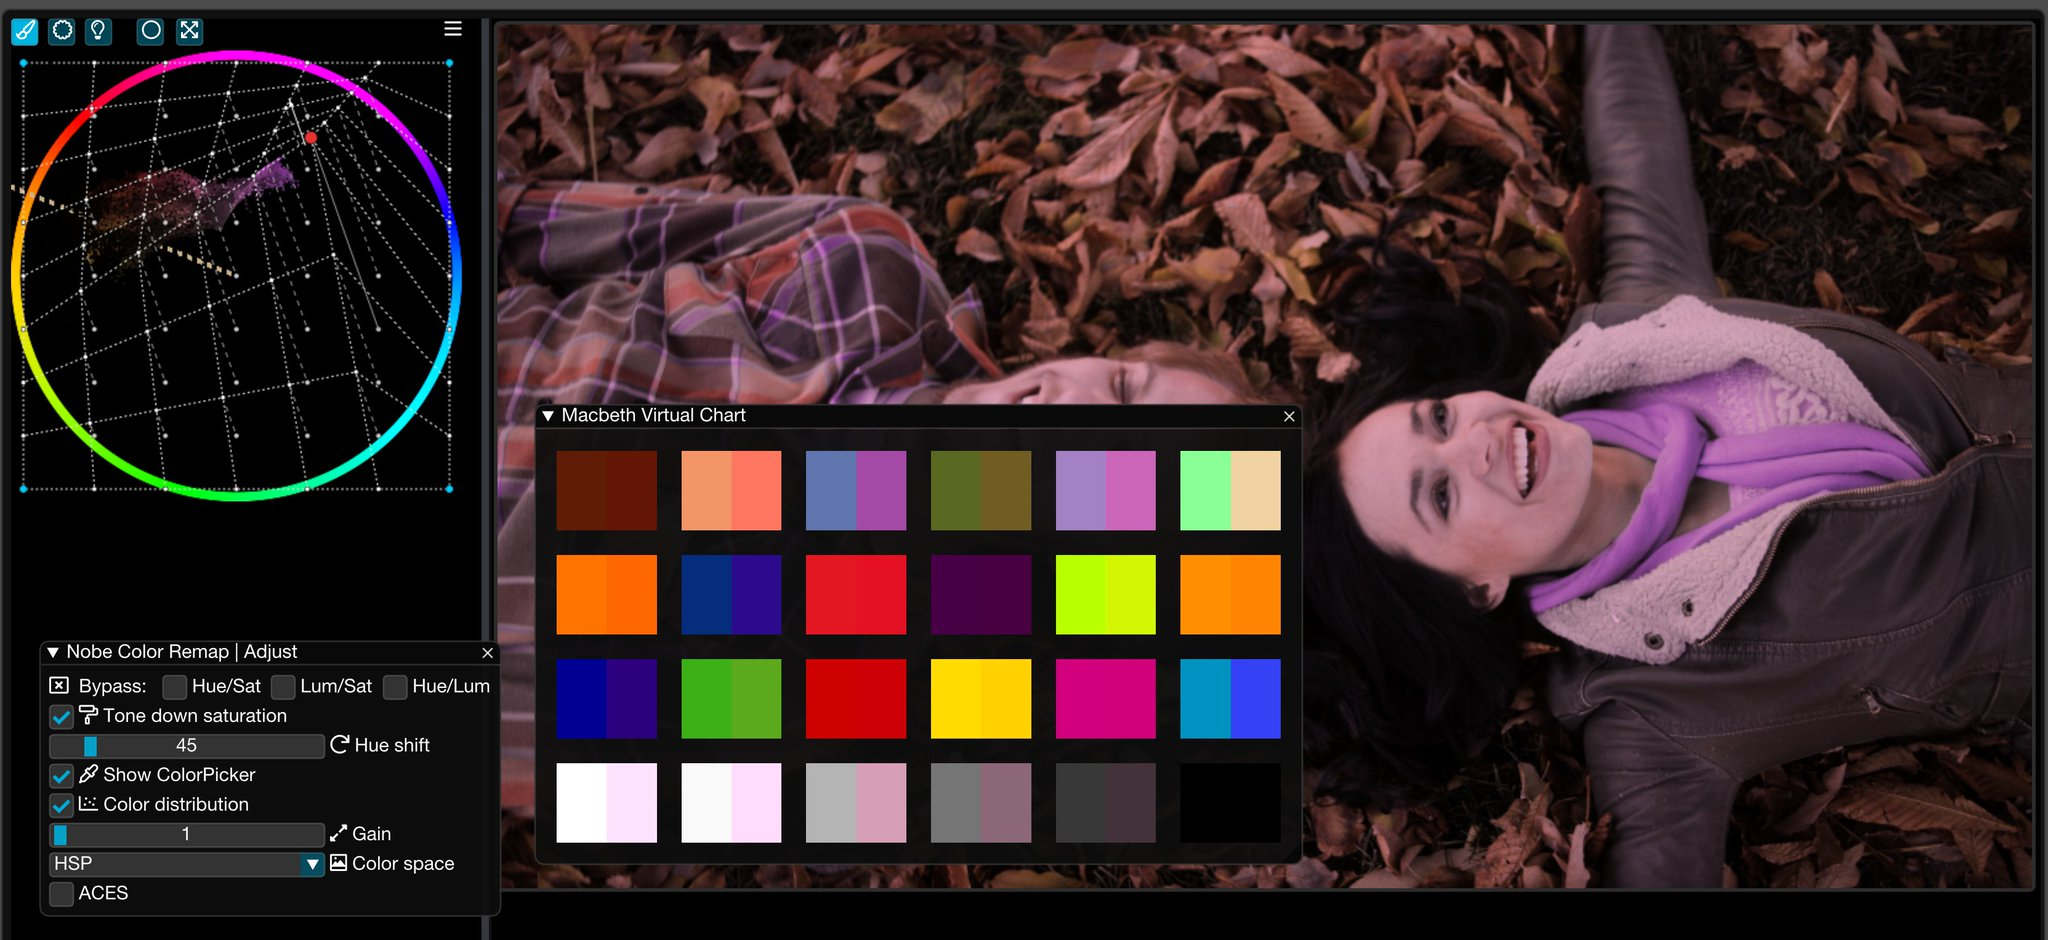 Nobe Color Remap for all your post-production tools. The original Color Warper 9